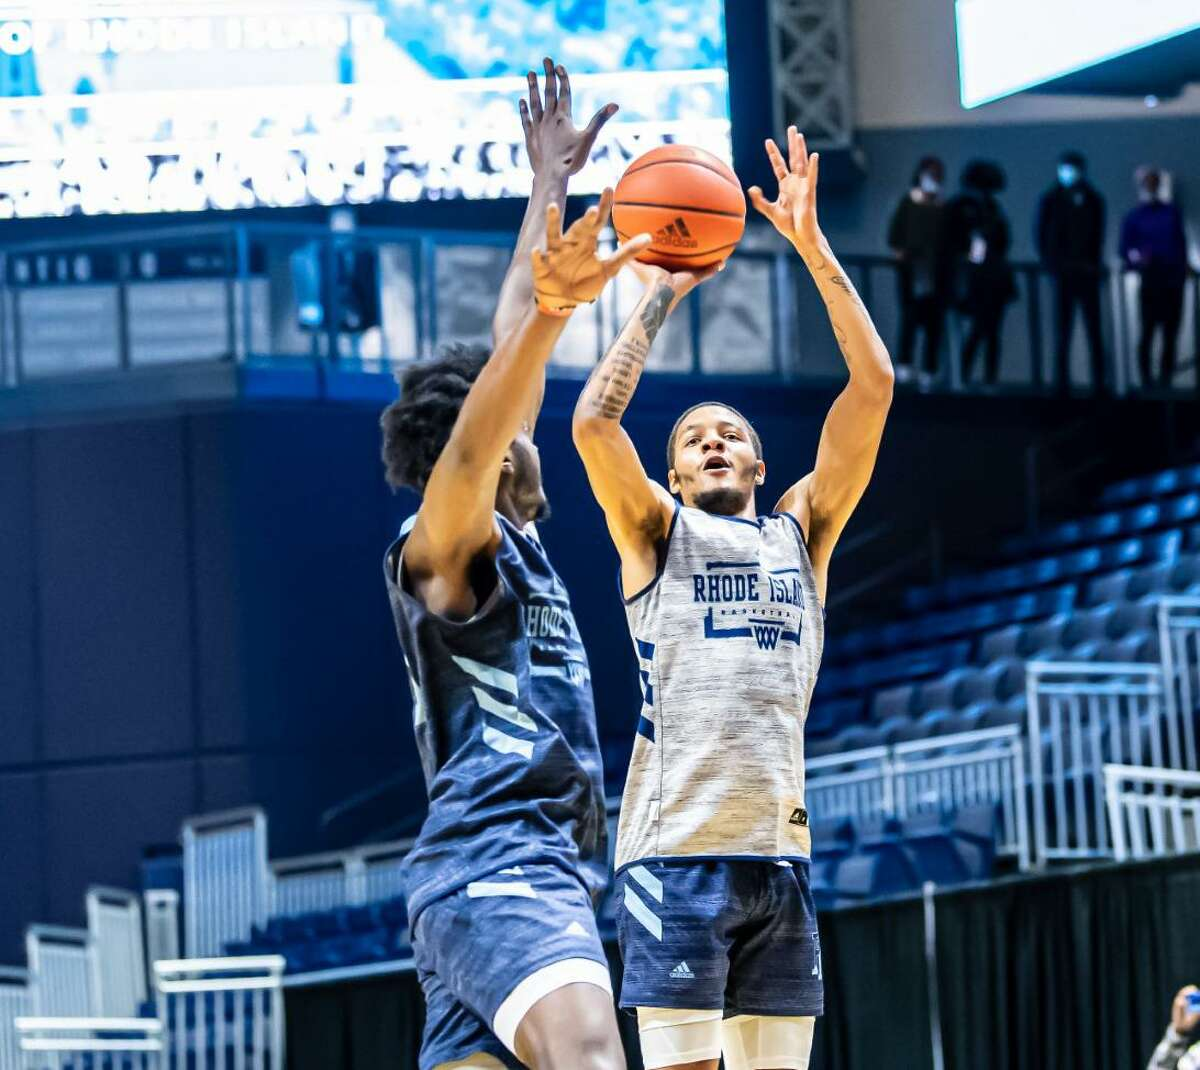 Ishmael El-Amin, son of former UConn star Khalid El-Amin, performs during the University of Rhode Island men's basketball team's Blue-White scrimmage on Saturday. El-Amin will play for URI this season as a grad student.